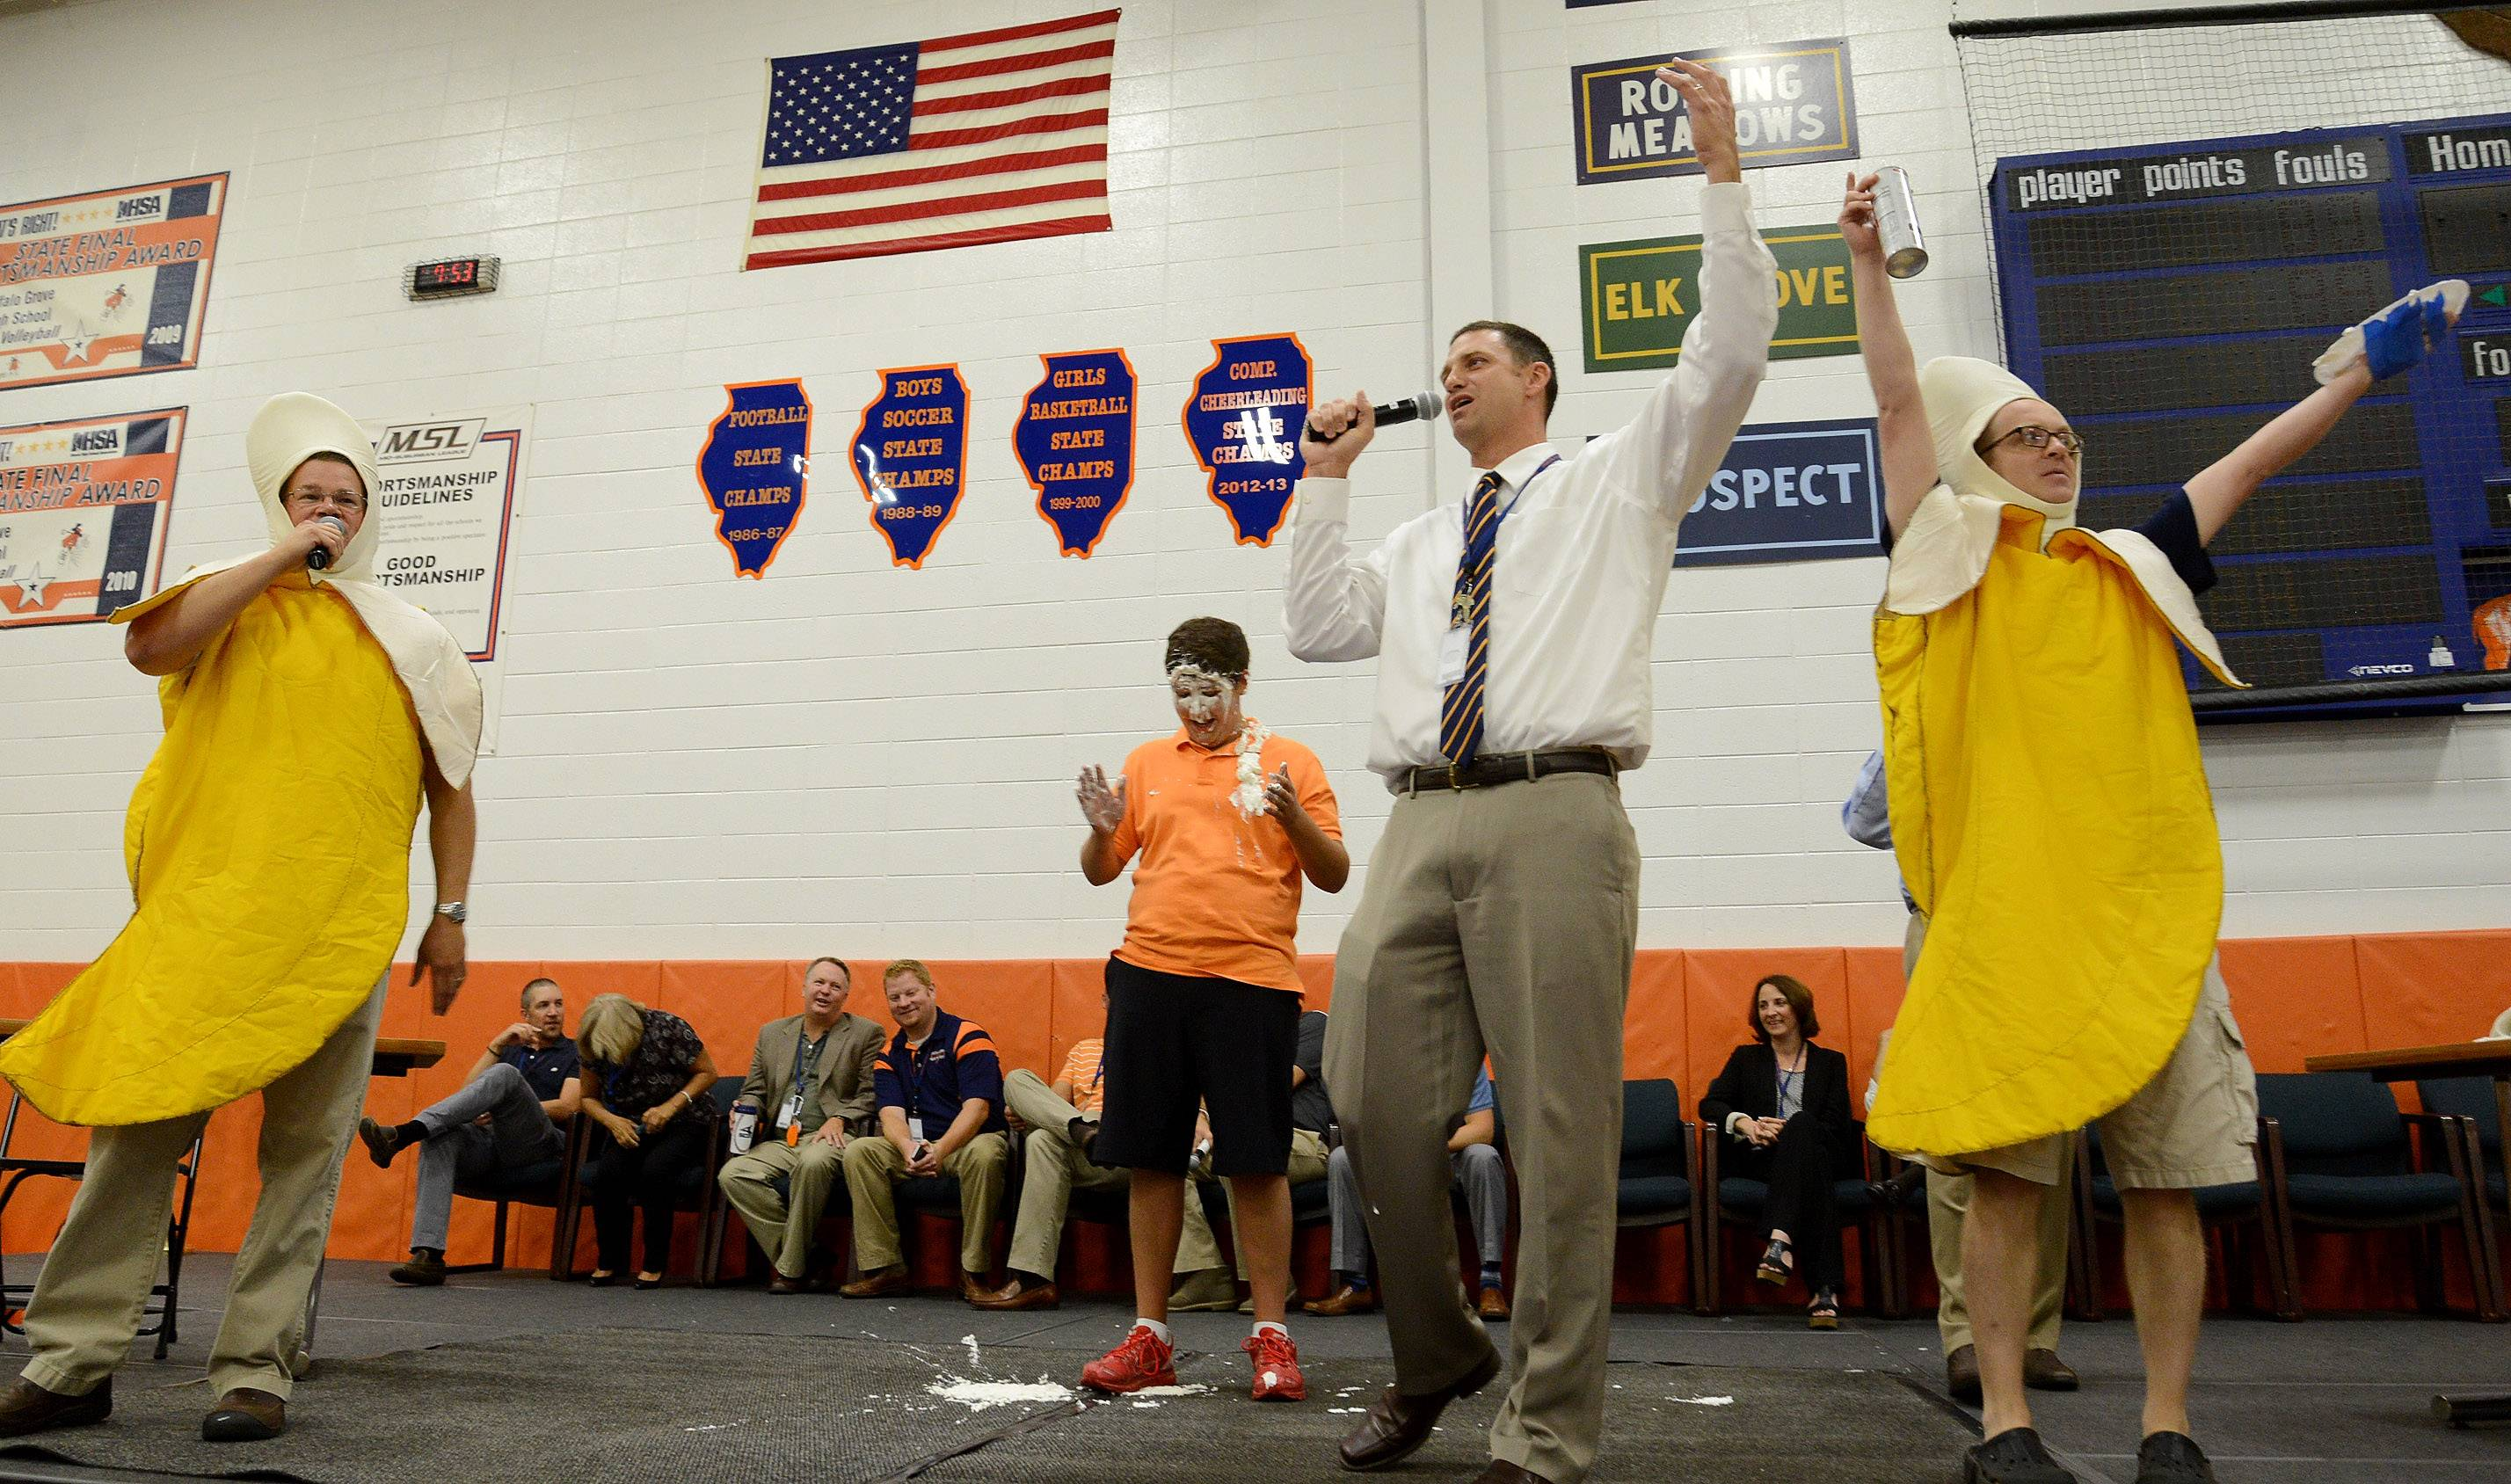 From left, Banana Man Tim Kosiek, senior class President Matt Shapiro, (who got a pie in the face from the Banana Men,) new Principal Jeff Wardle and Banana Man Rich Schram close out a back-to-school pep rally Wednesday at Buffalo Grove High School.